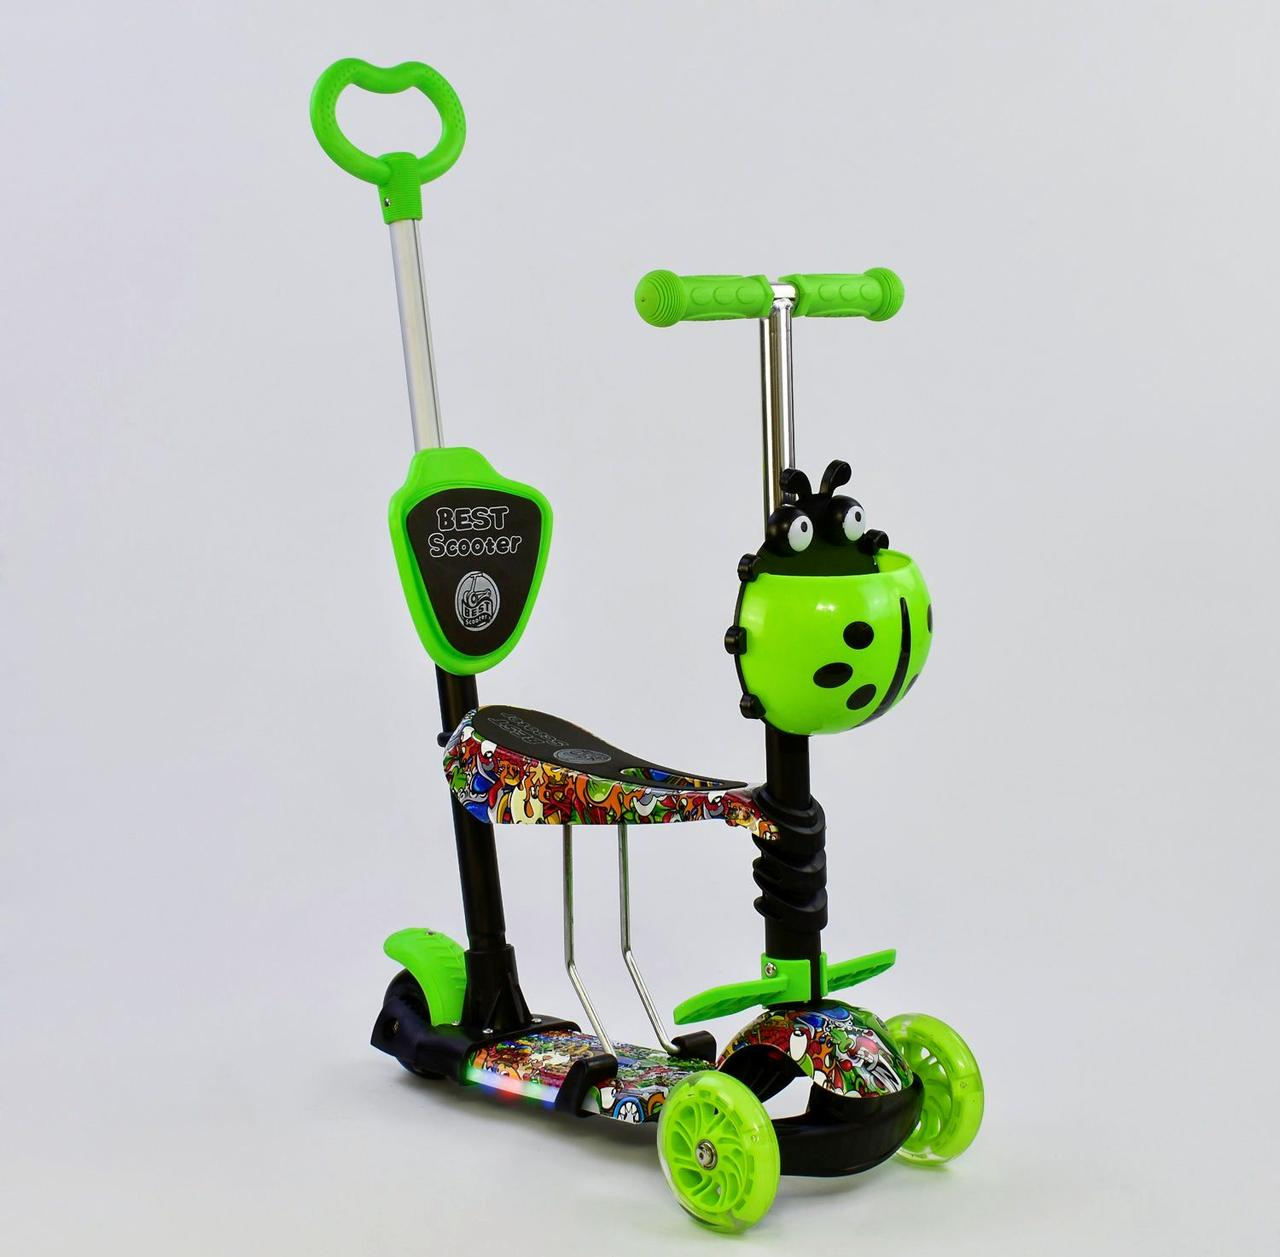 Самокат Best Scooter 59050 Салатовый 5в1 Mini 74042